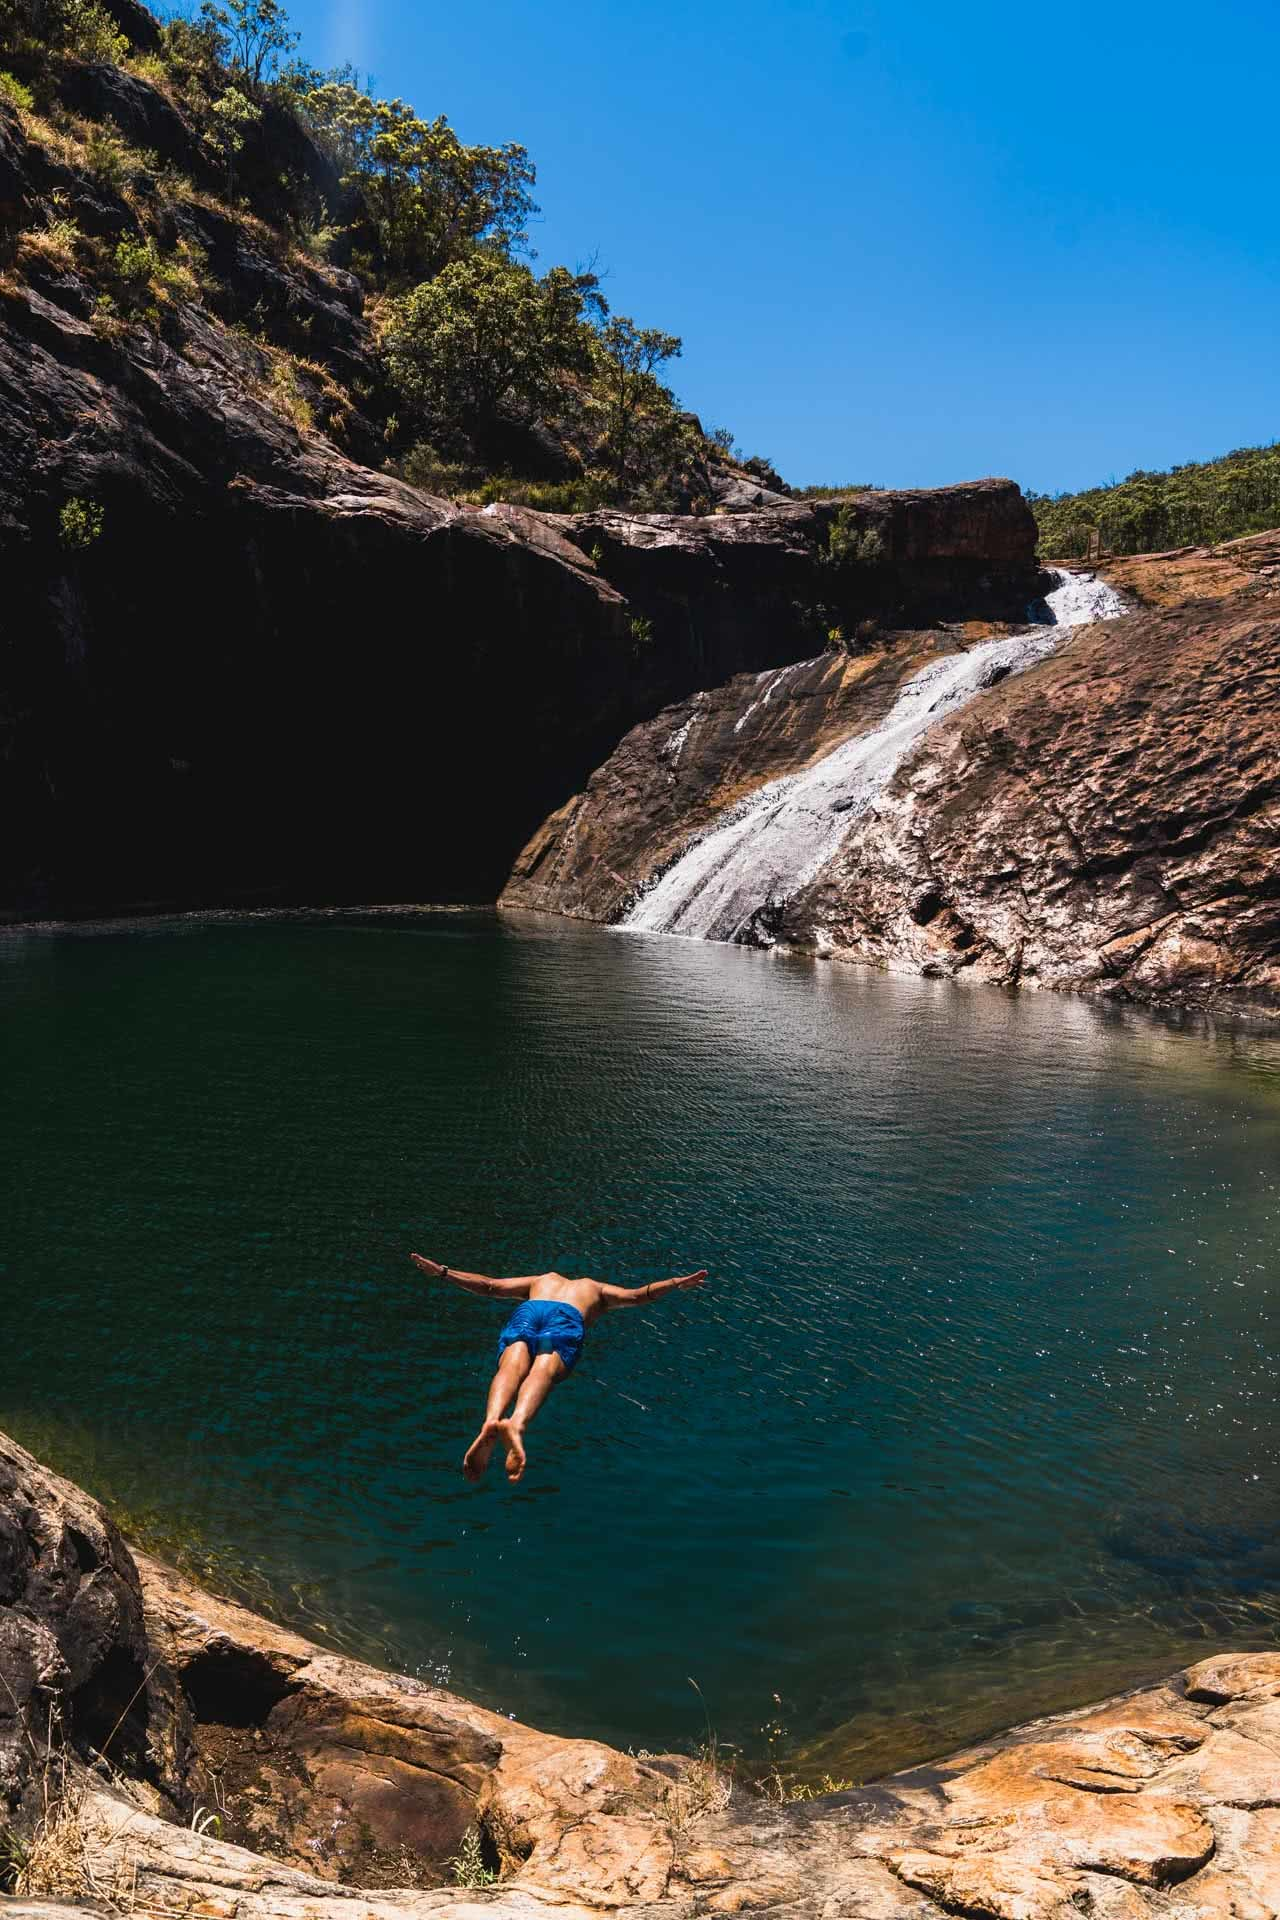 Slither Your Way To Serpentine Falls // Serpentine (WA), Jonathan Tan, waterfall, diving, water, rocks, pool